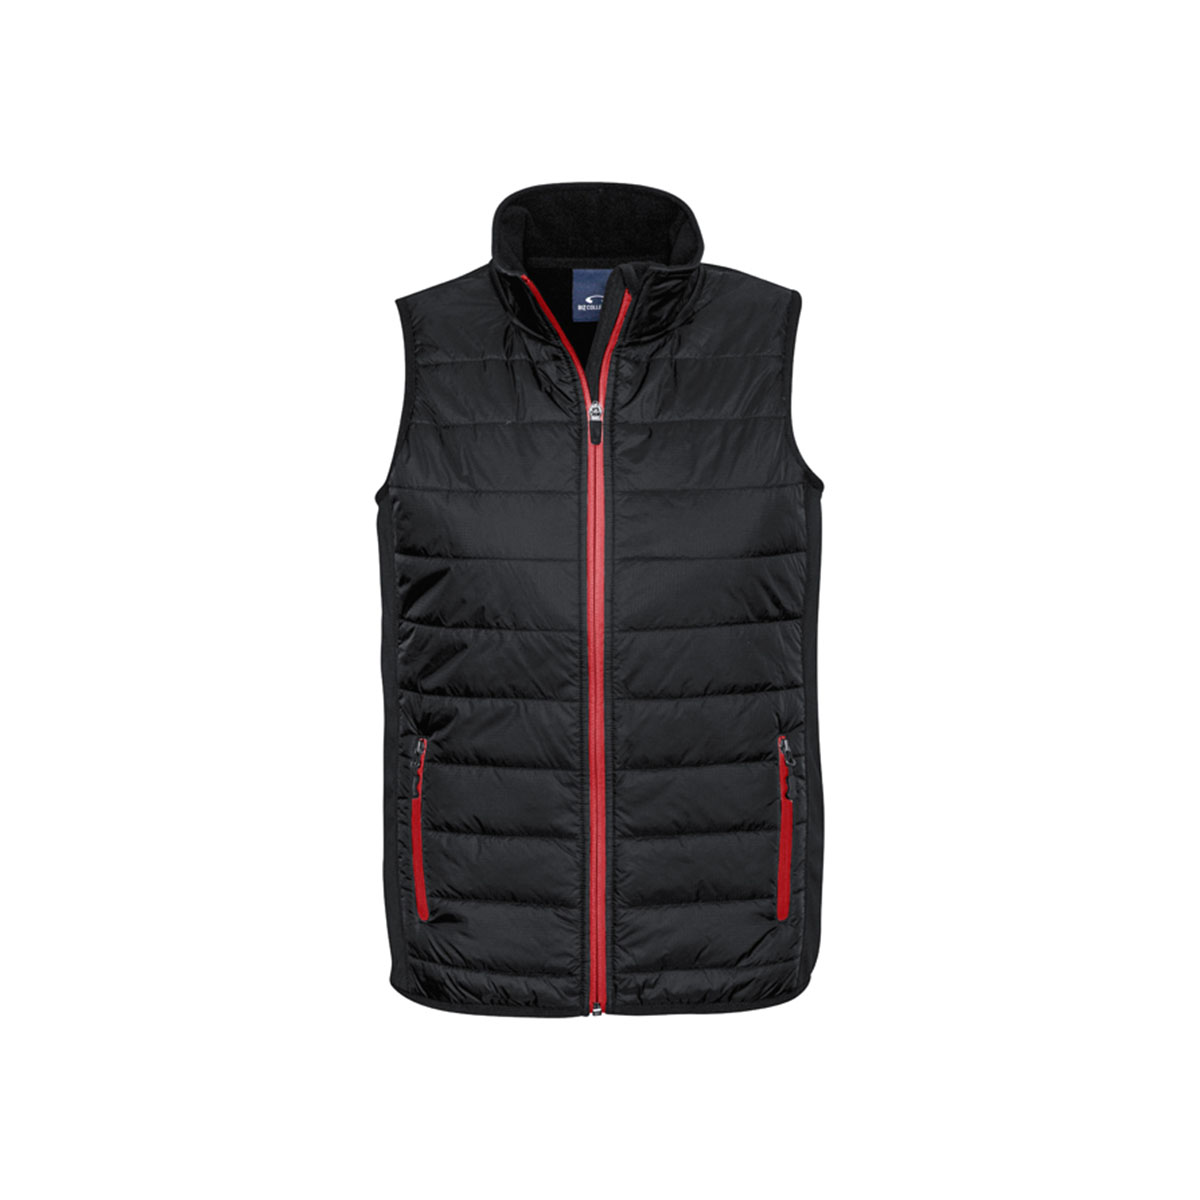 Mens Stealth Tech Vest-Black / Red